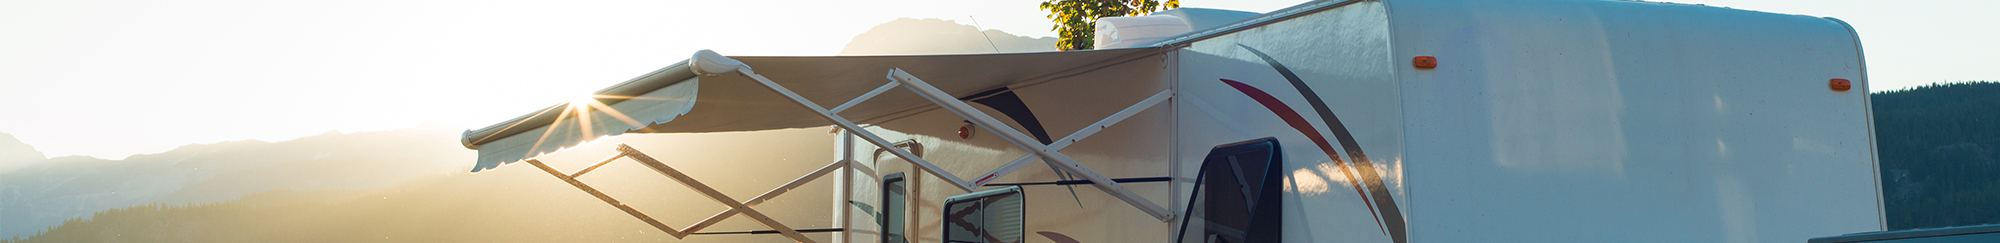 pop up camper awning complete parts canvas